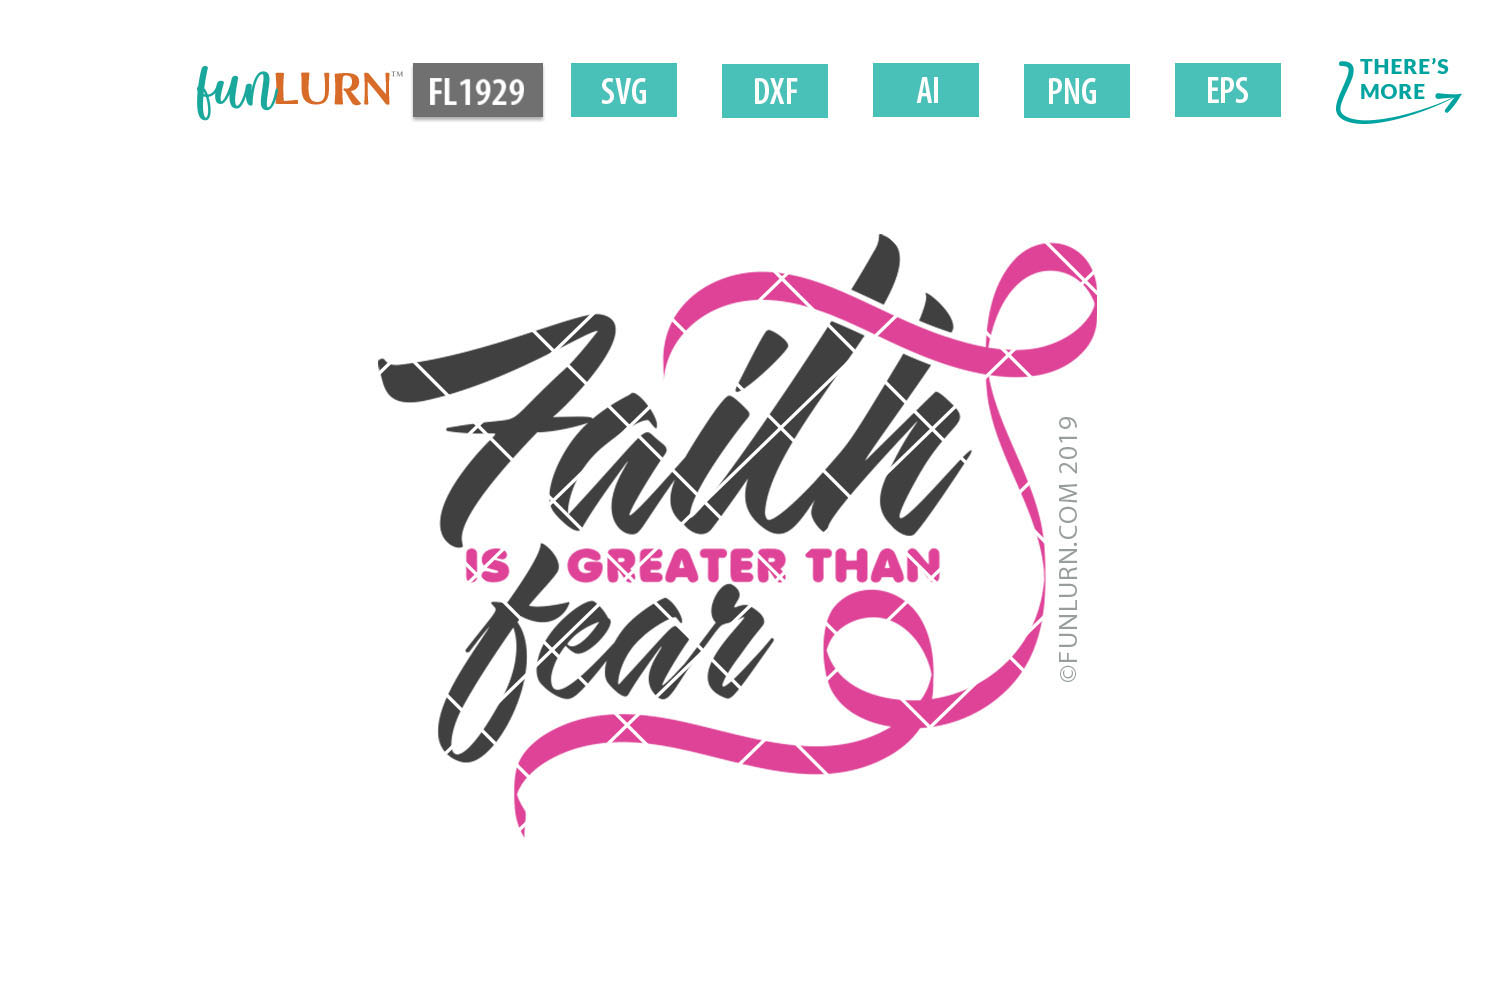 Faith is Greater Than Fear Pink Ribbon SVG Cut File example image 2